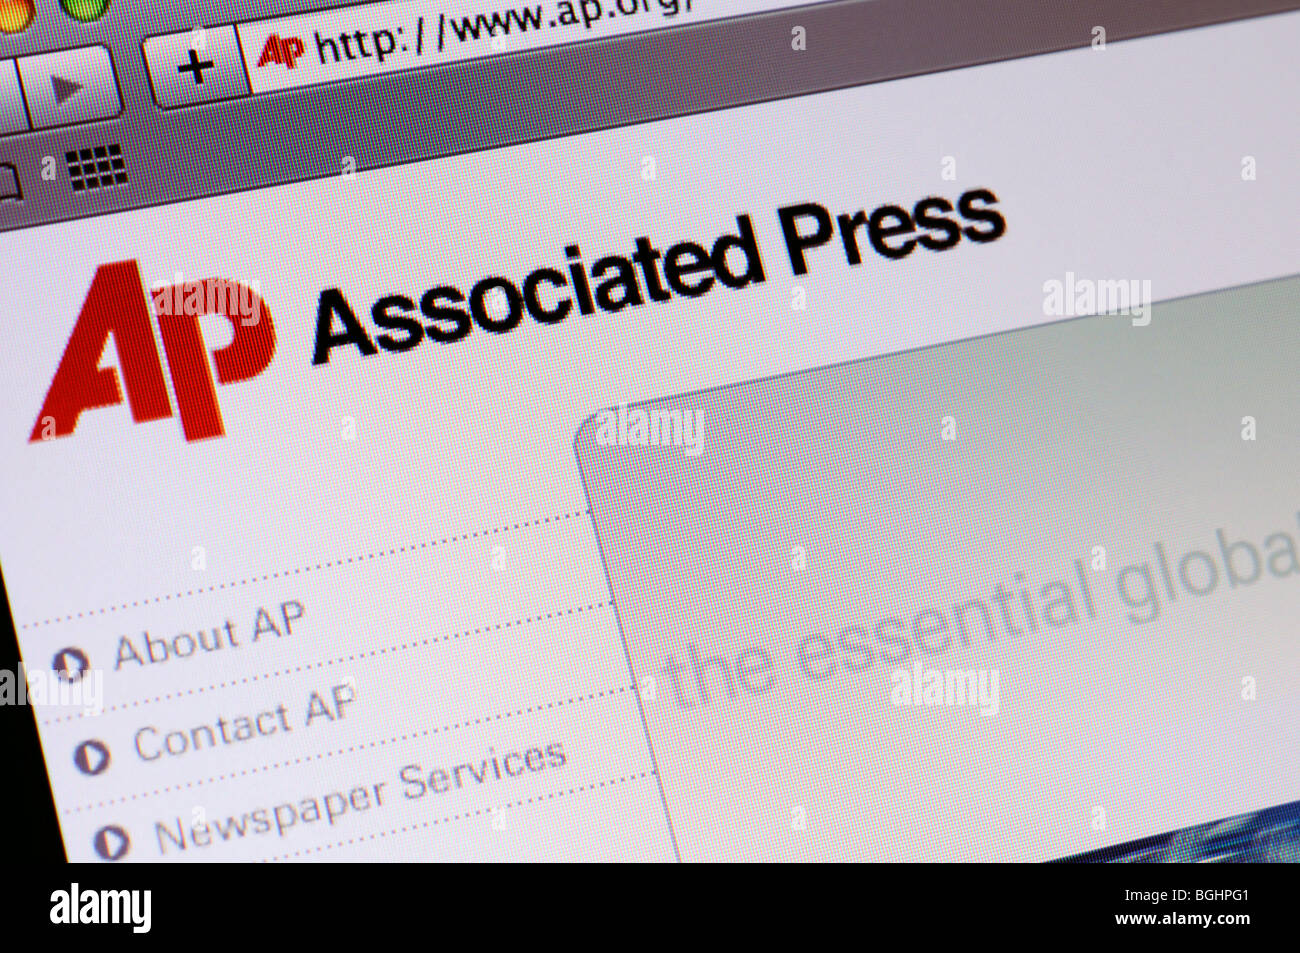 Associated Press website - Stock Image